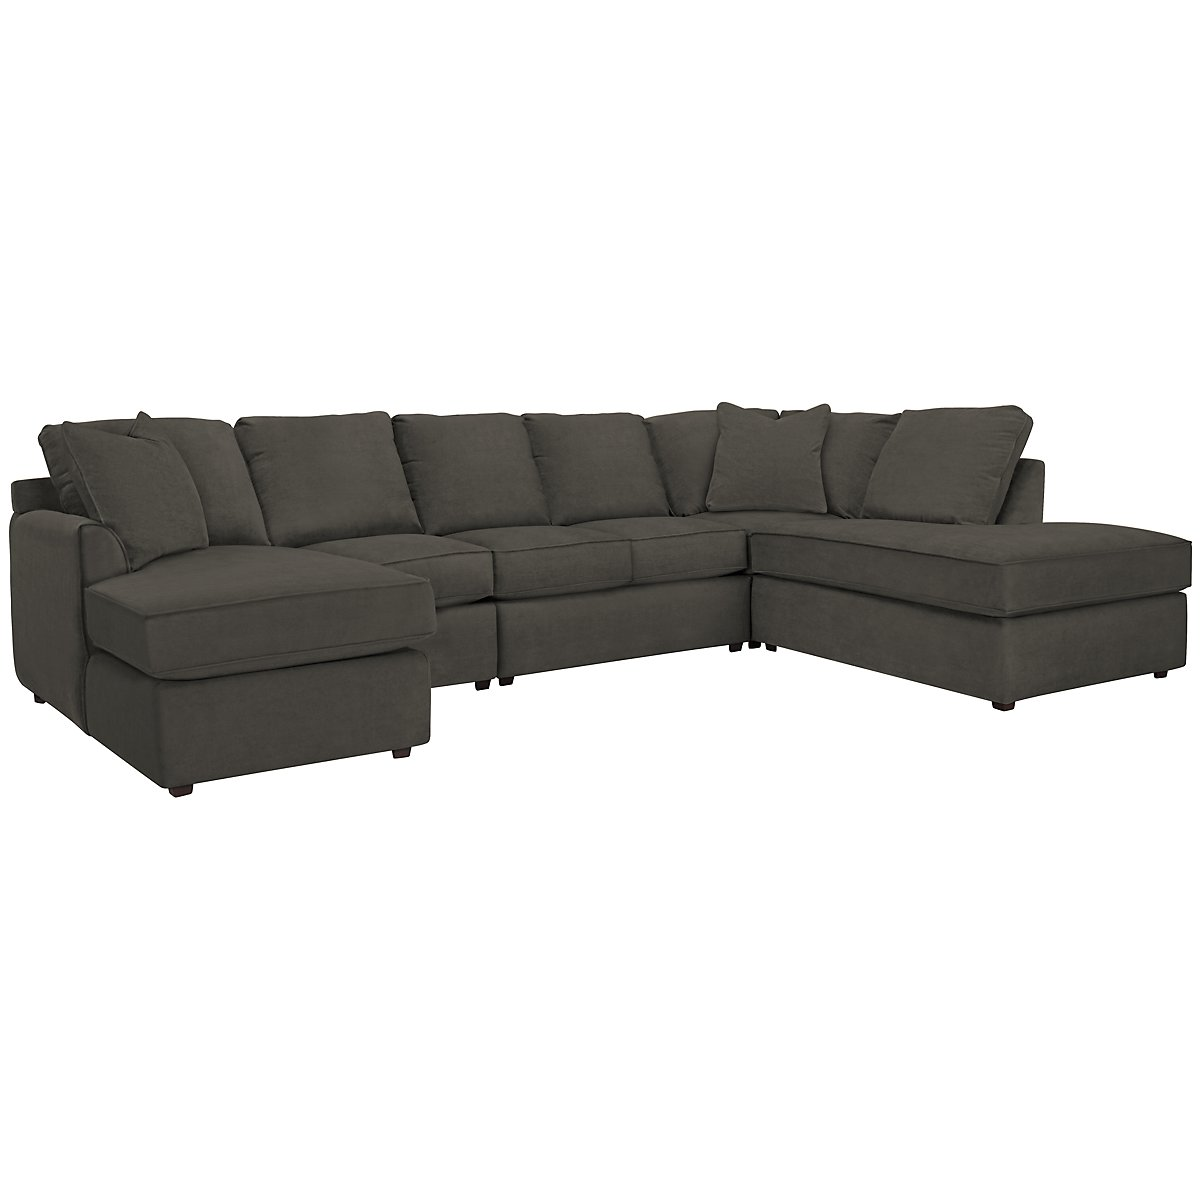 Express3 Dark Gray Microfiber Large Right Bumper Sectional